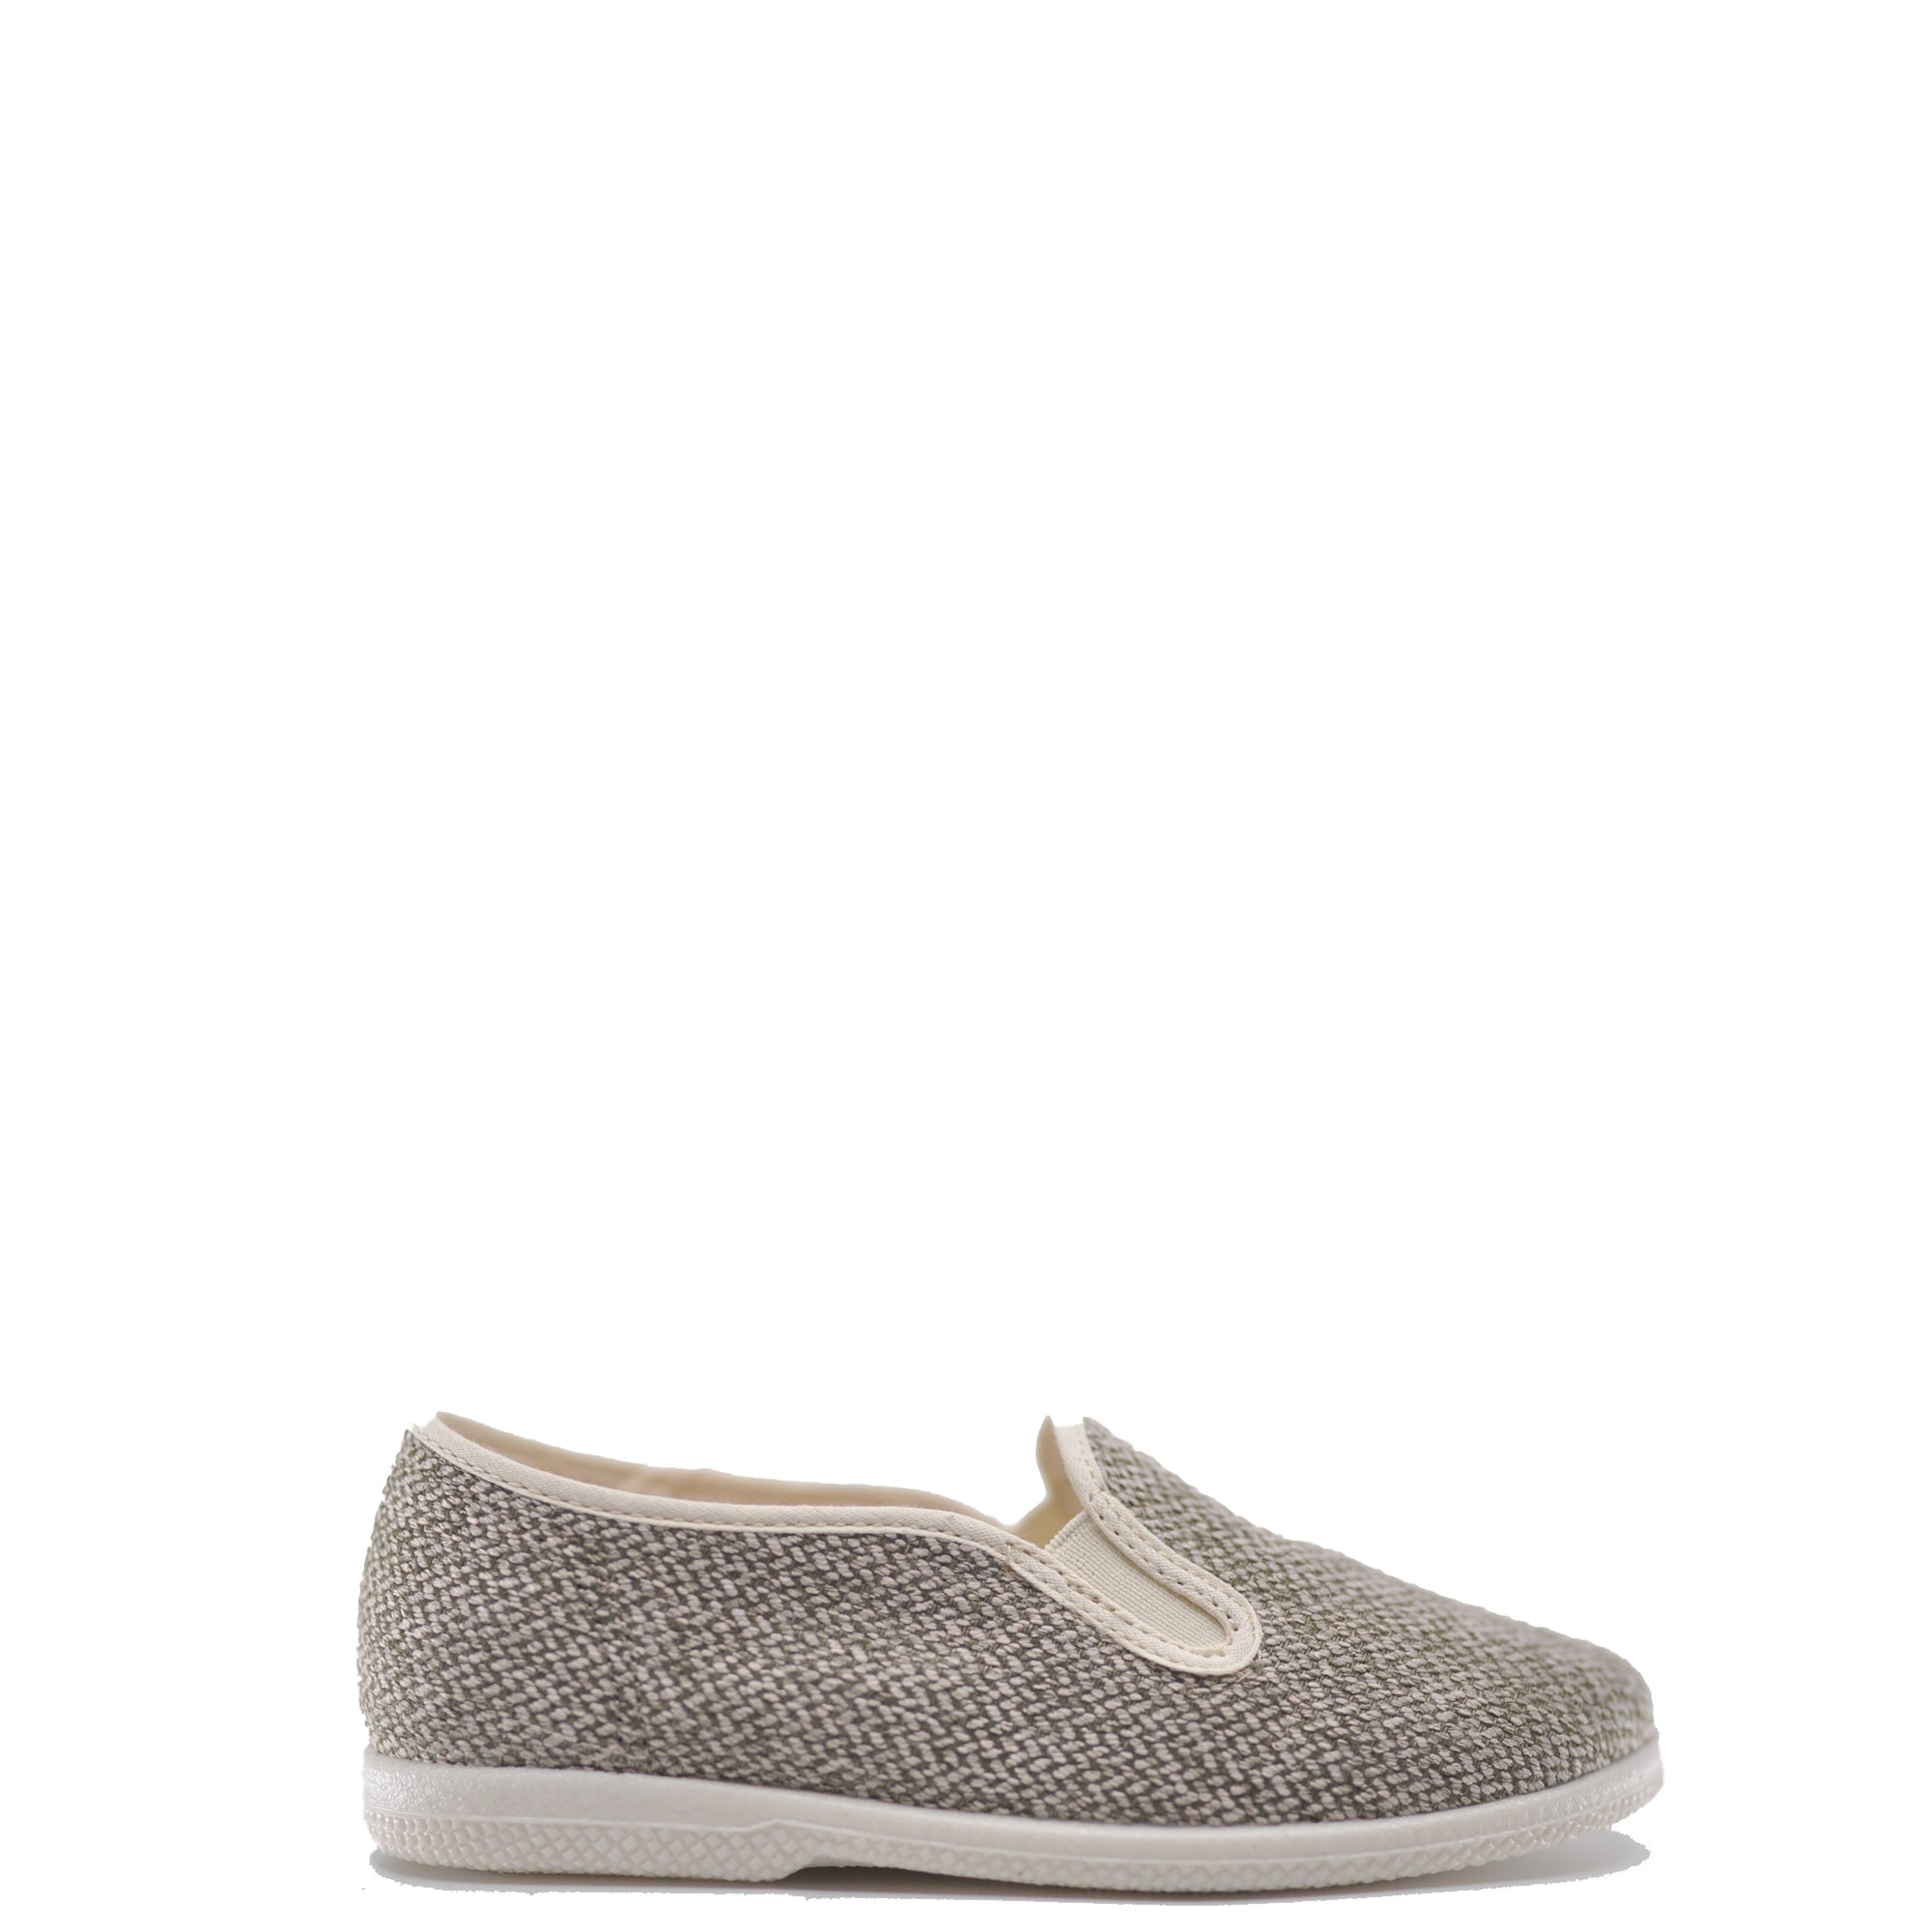 Pepe Taupe Linen Weave Slip On Shoe-Tassel Children Shoes